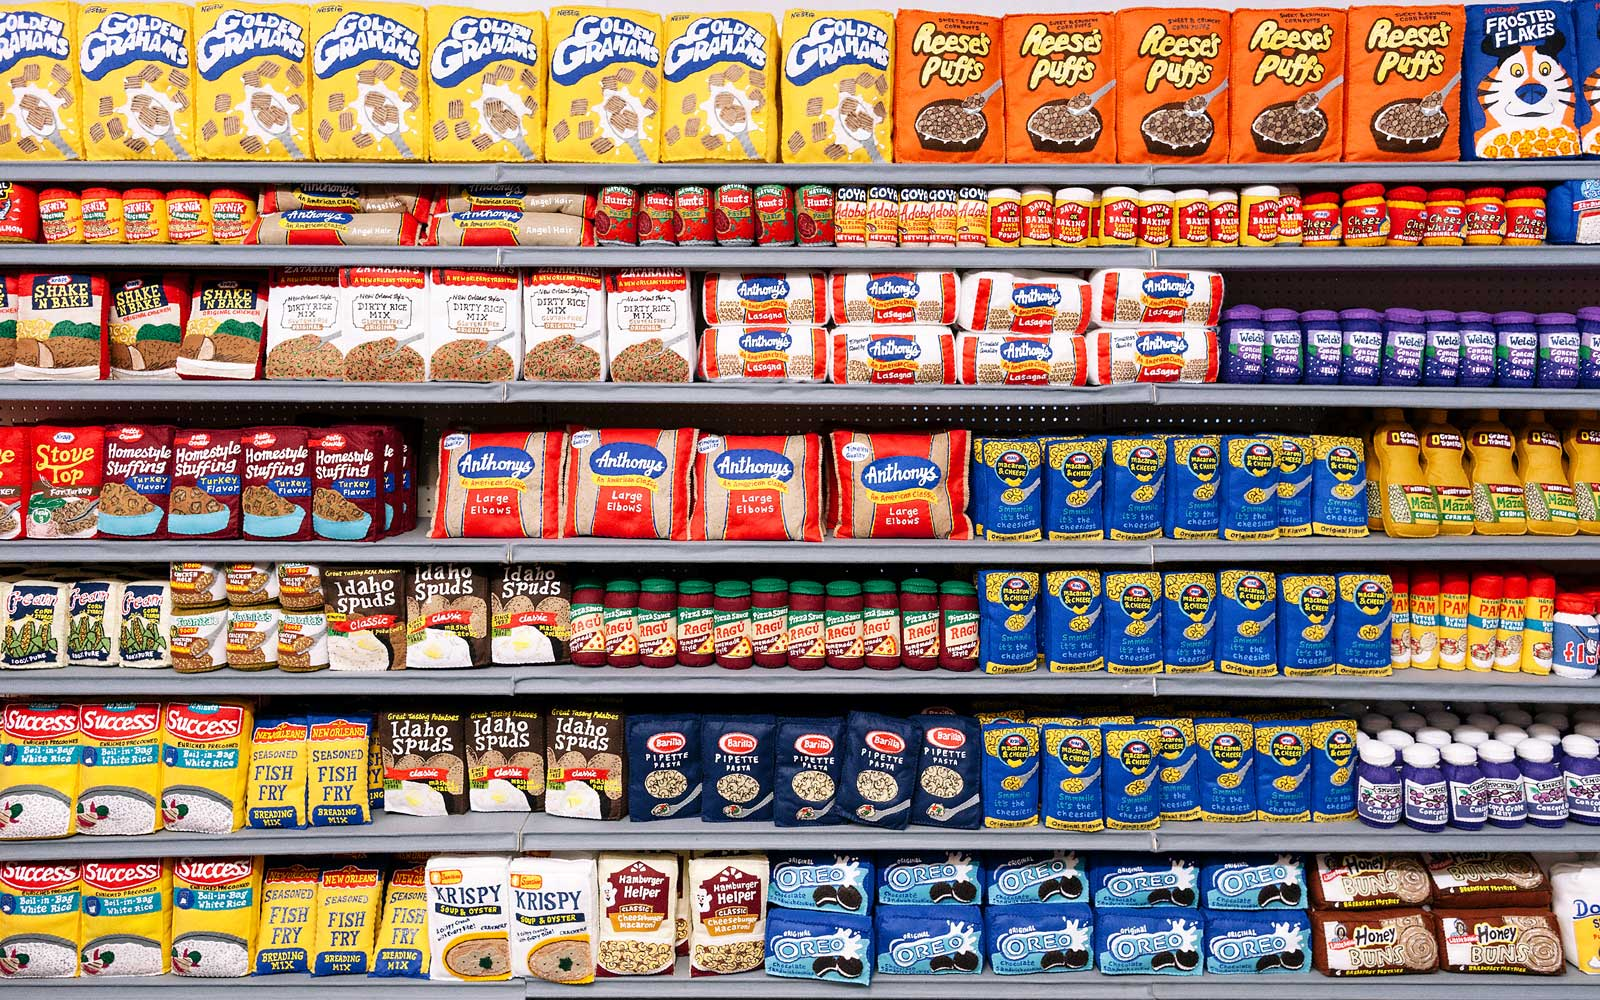 This Los Angeles Grocery Store Has 31,000 Items — and They're All Made of Felt